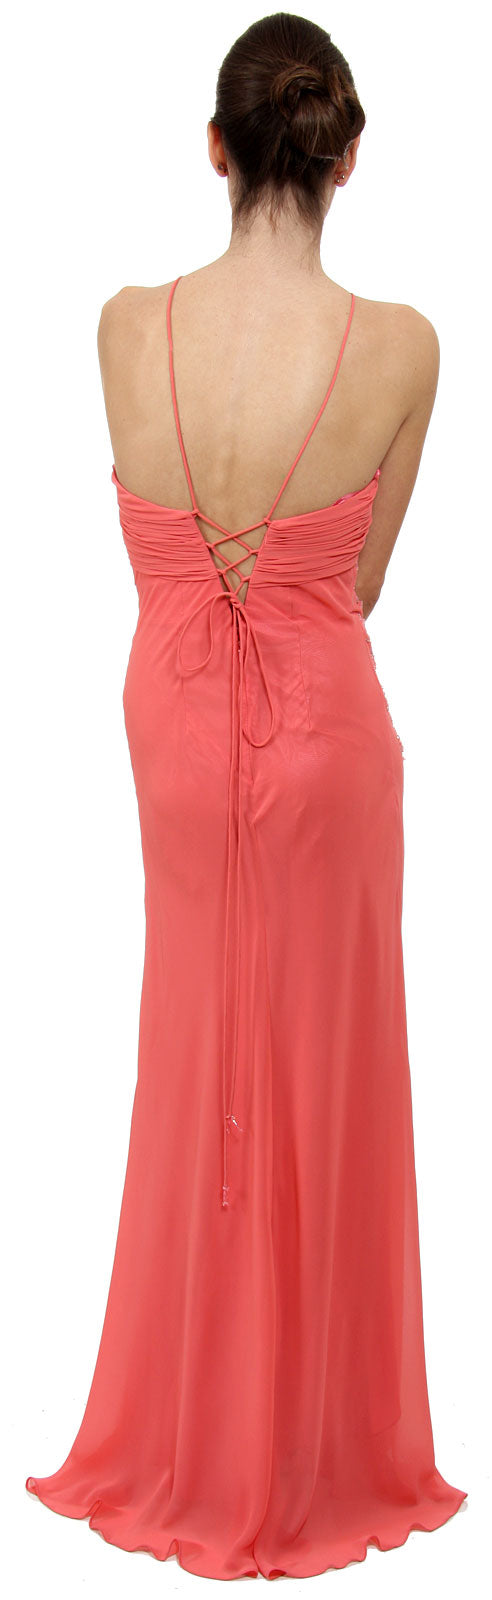 Back image of Keyhole Ruched Bust Beaded Formal  prom Dress